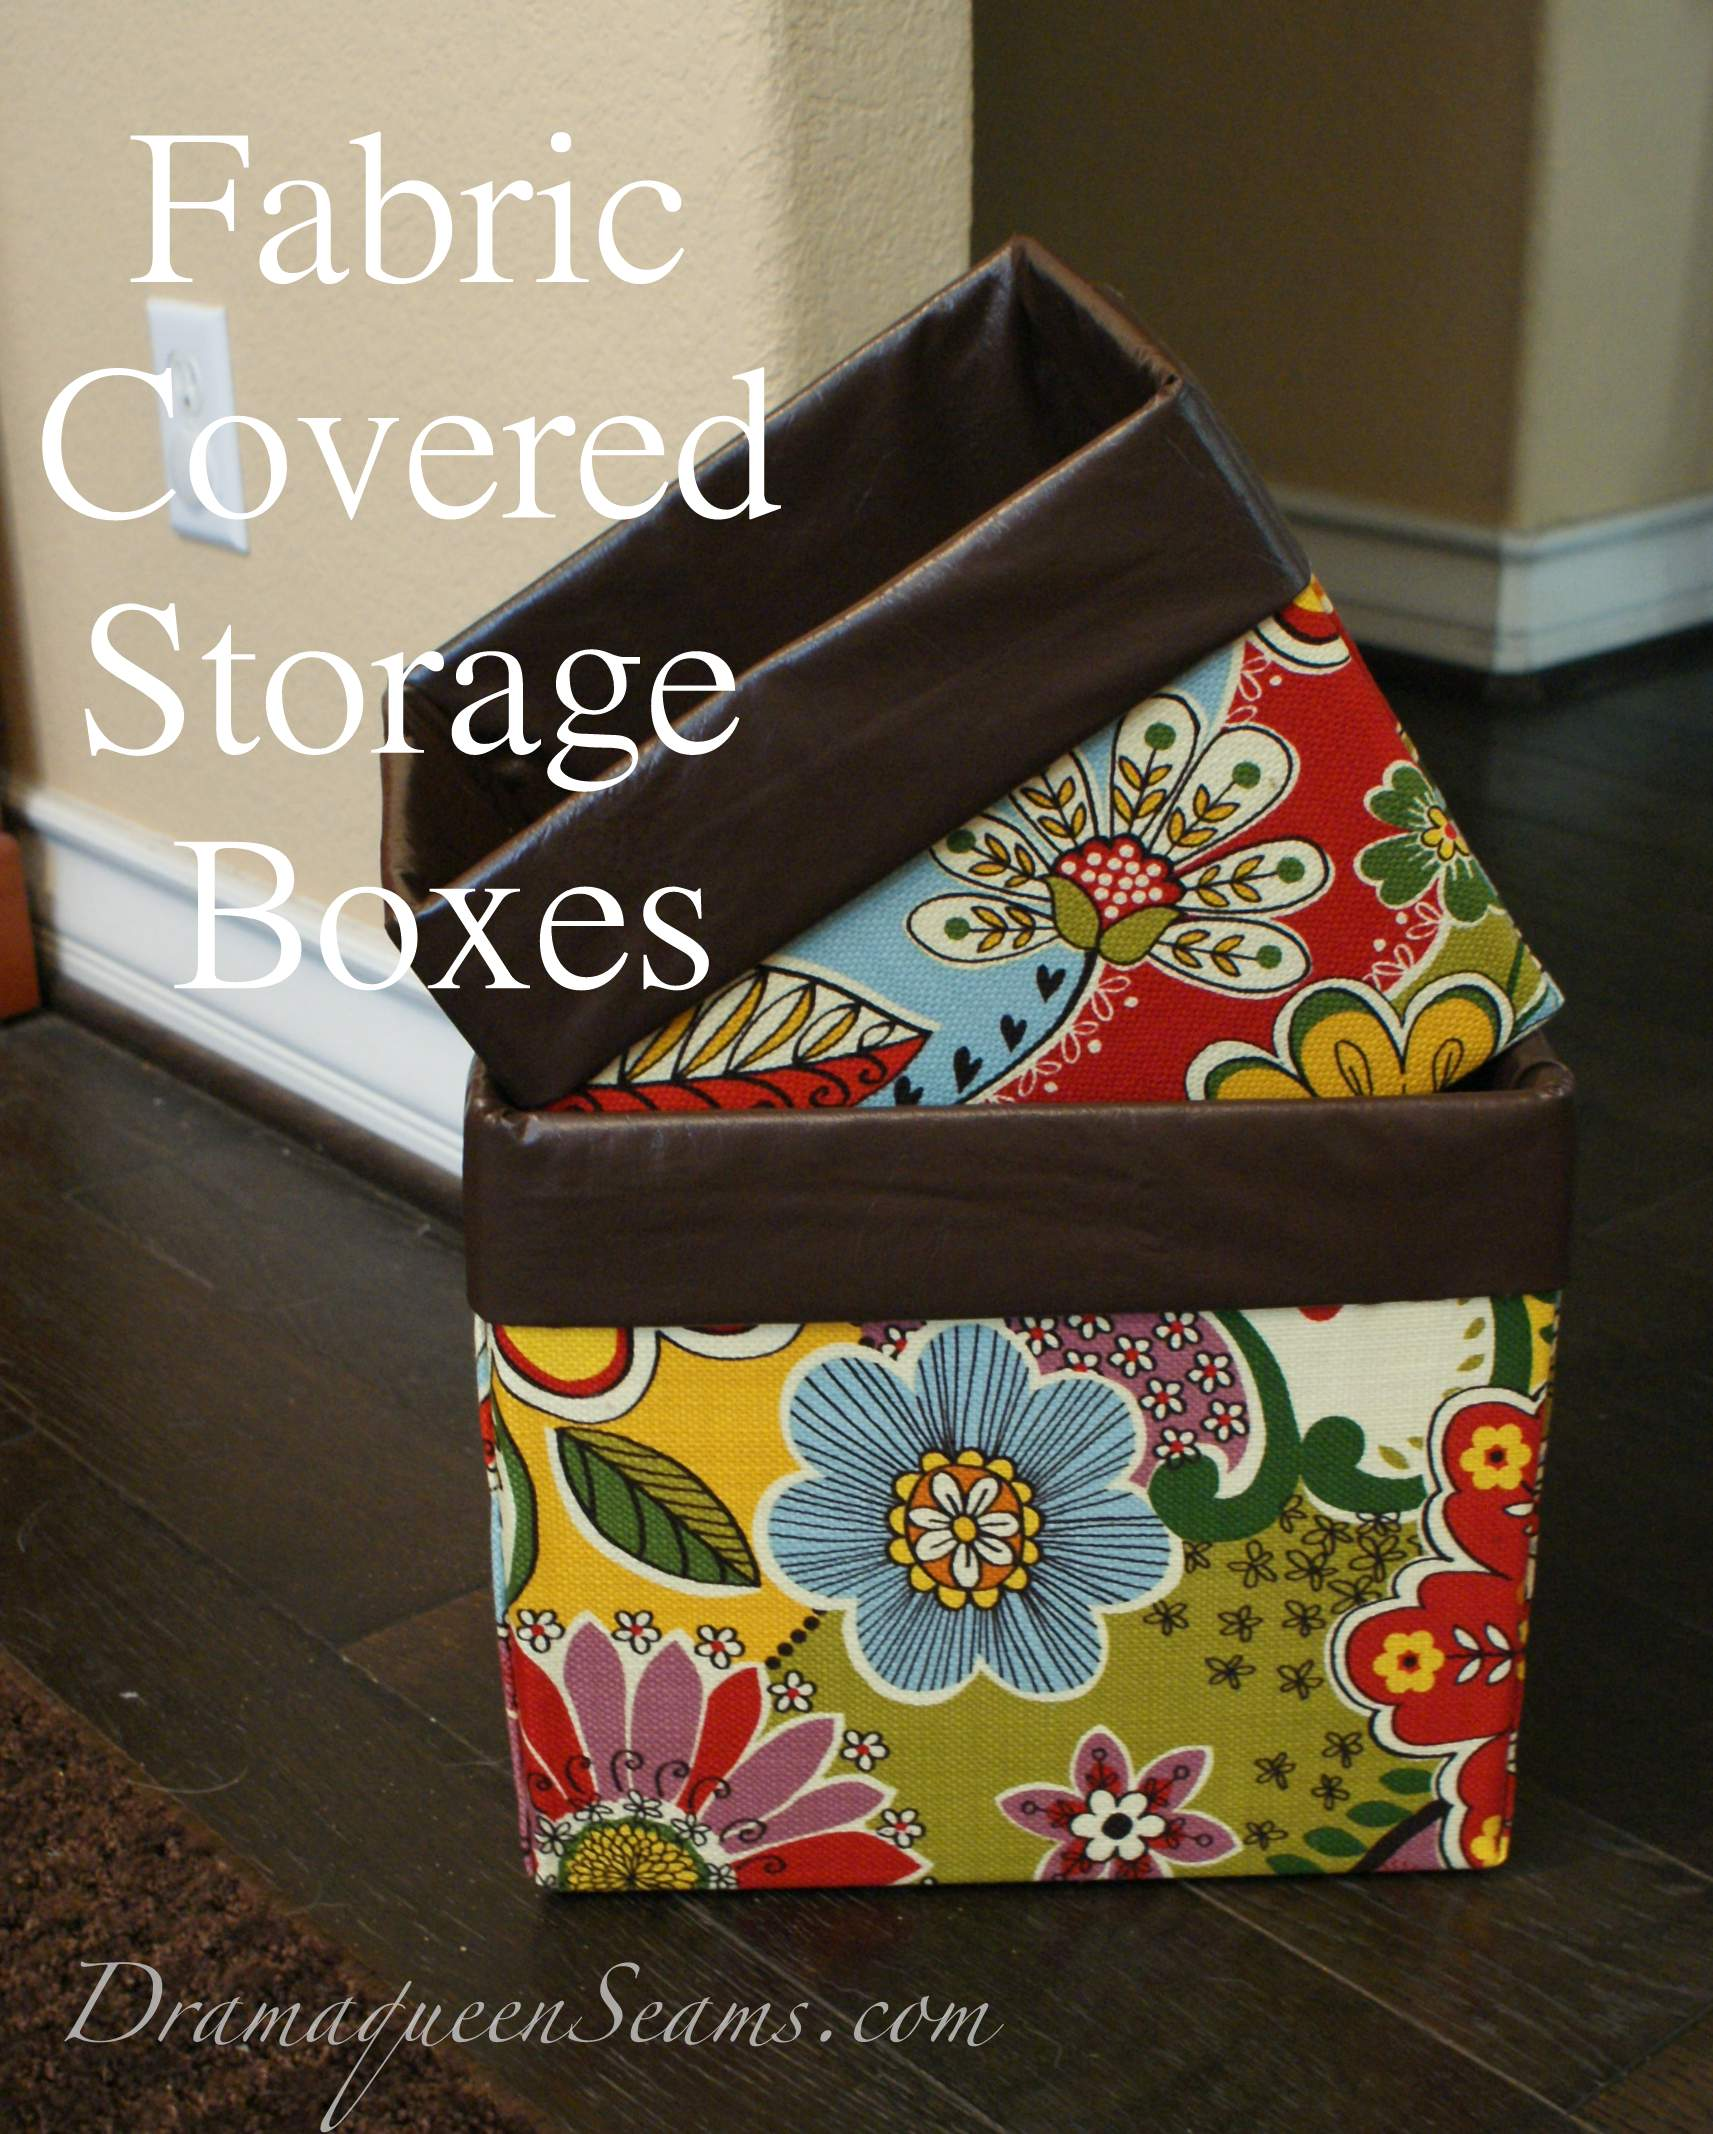 Fabric covered storage boxes drama queen seams for Fabric covered boxes craft